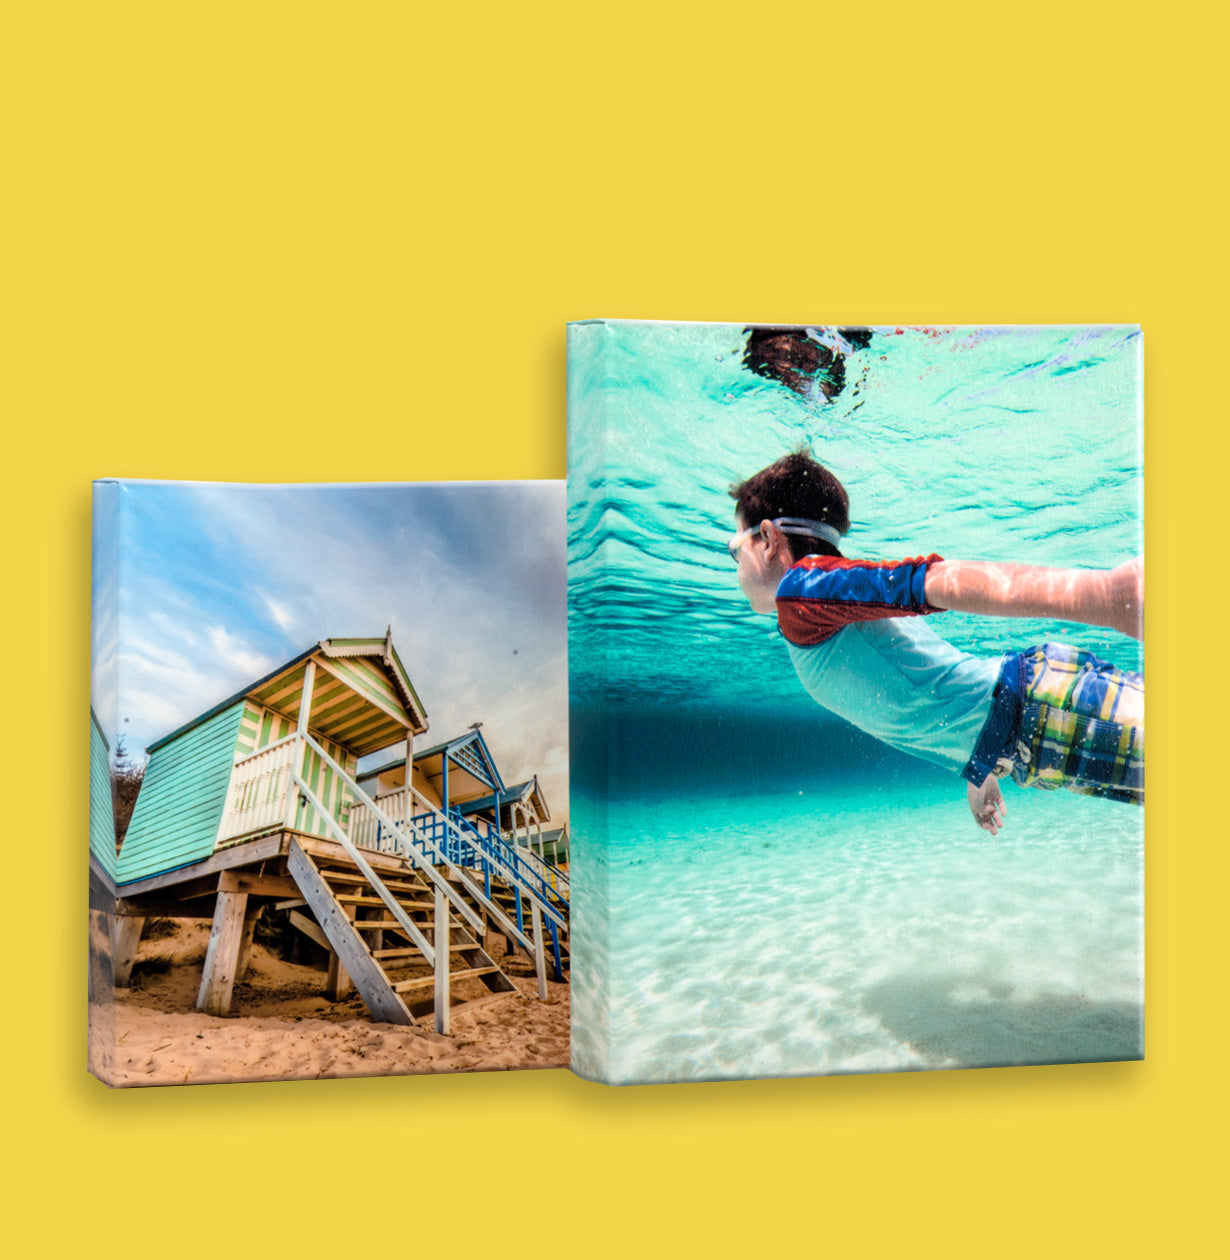 Underwater photo and beach image printed on canvas by Posterjack